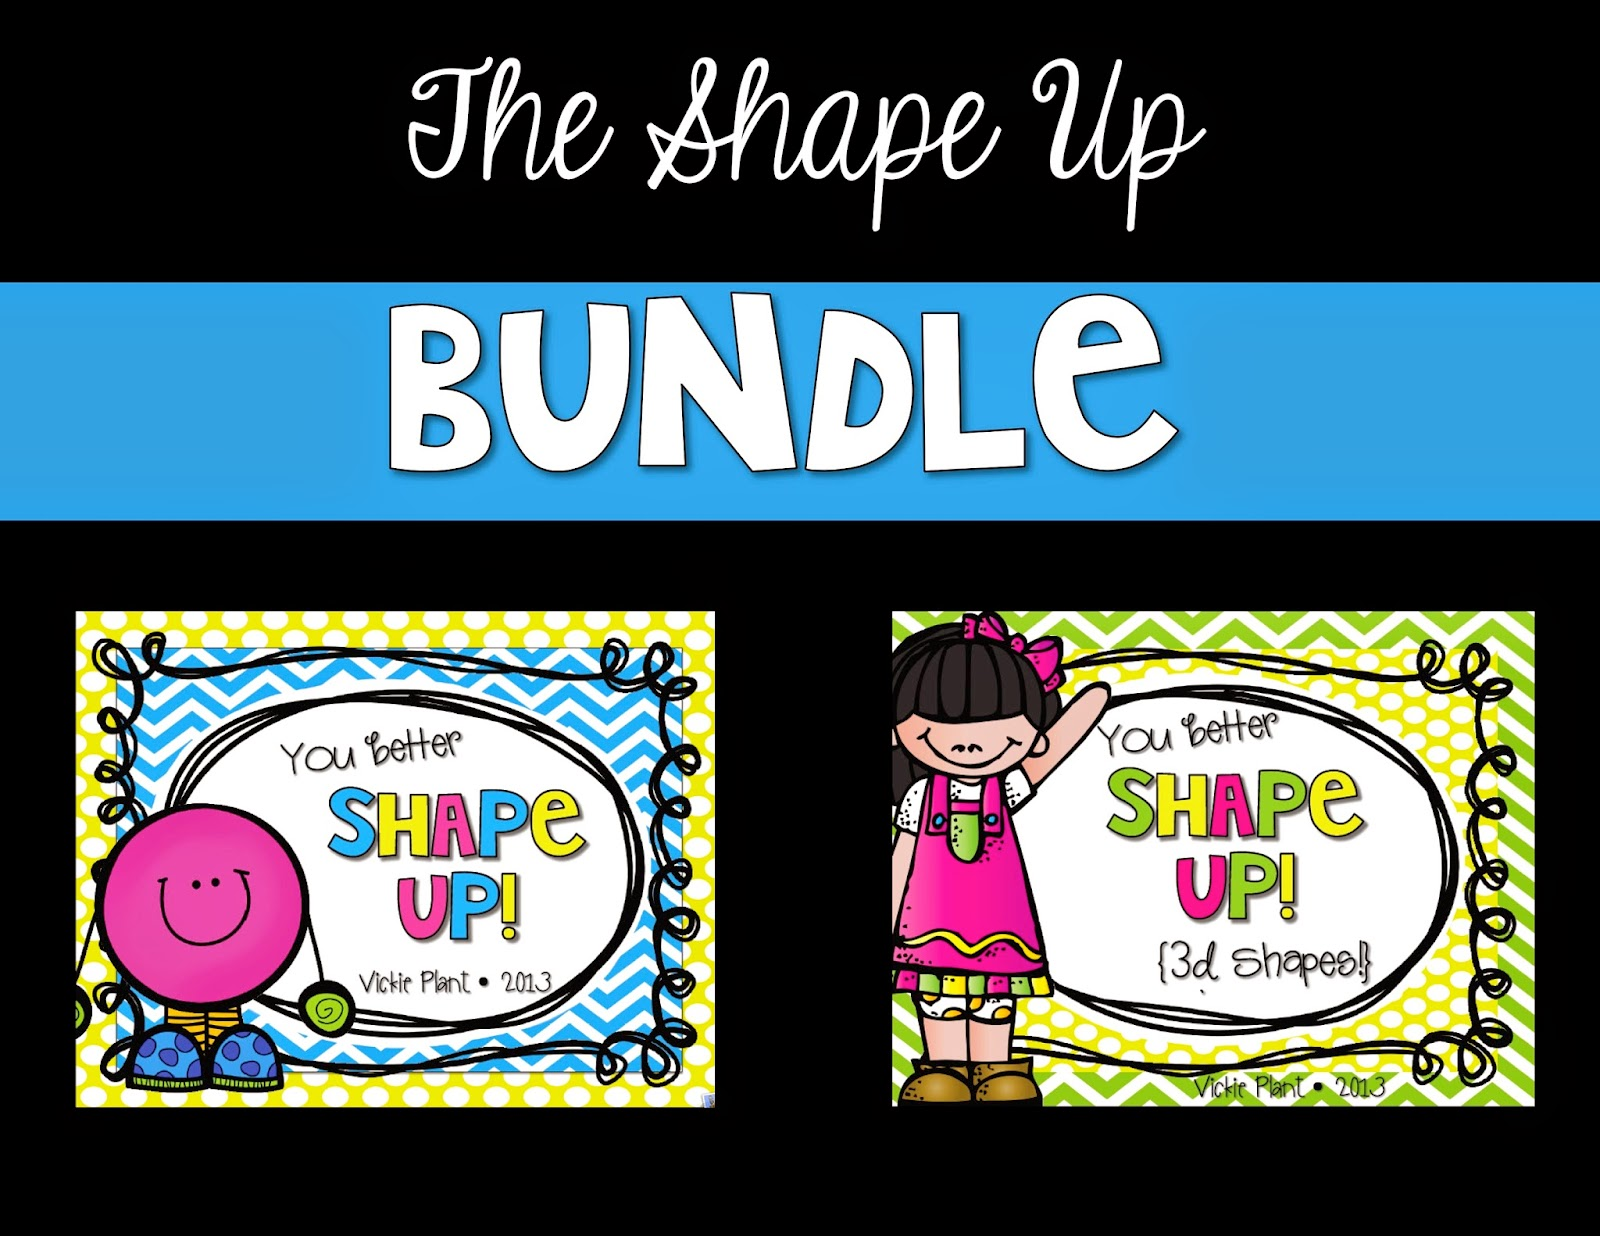 https://www.teacherspayteachers.com/Product/The-Shape-Up-Bundle-1729250